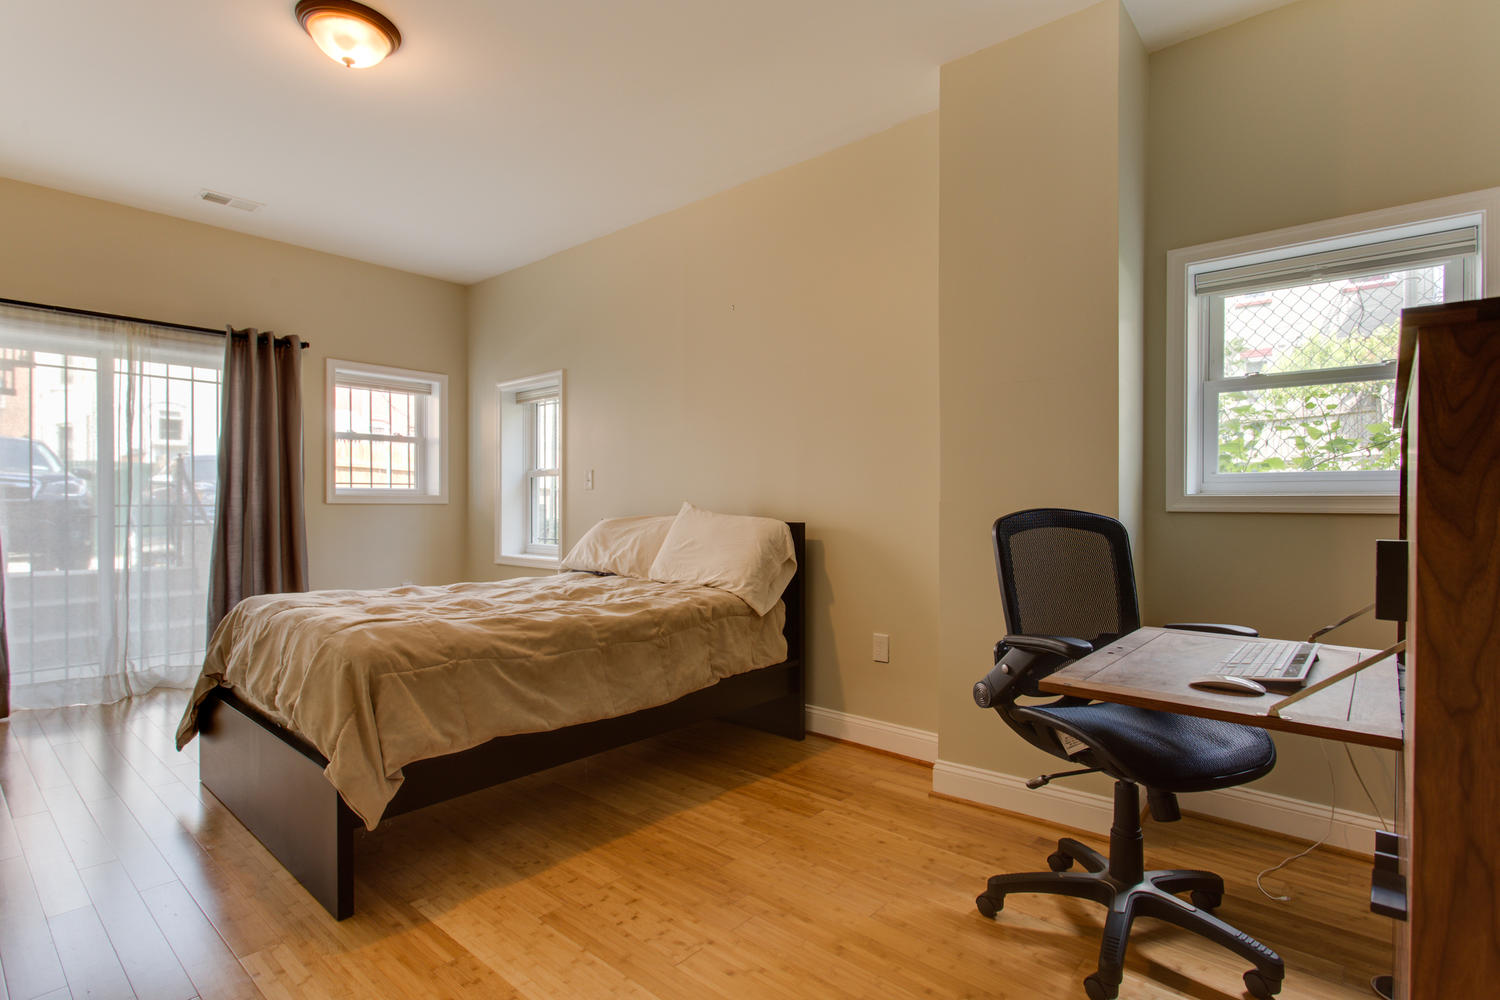 3532 13th St NW Washington DC-large-063-63-Bedroom-1500x1000-72dpi.jpg